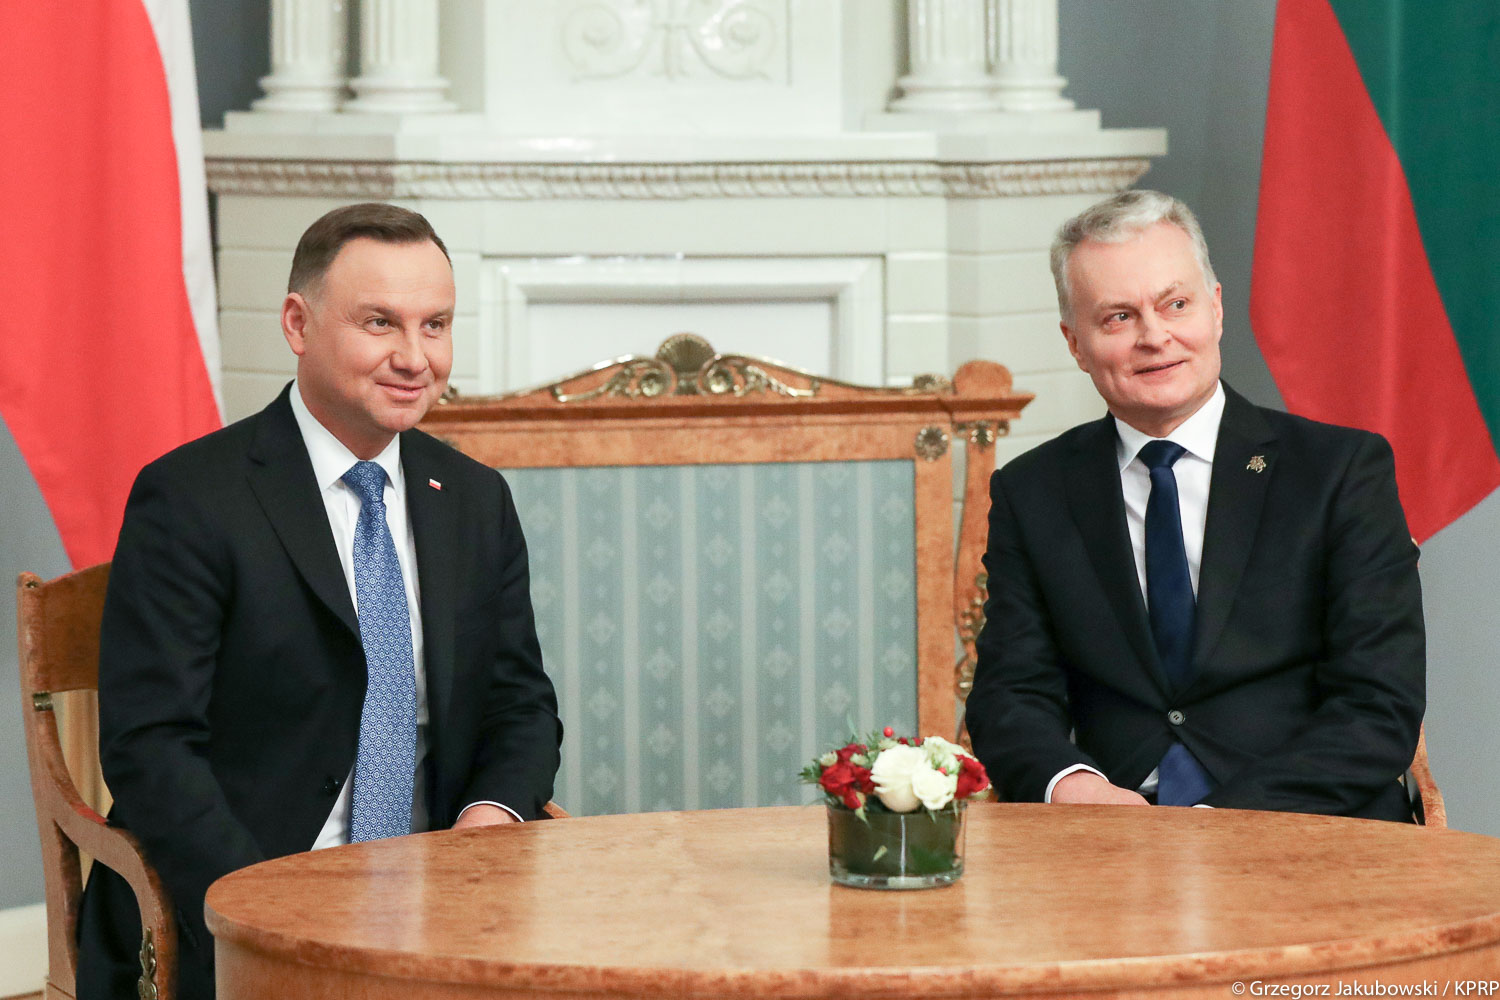 WI Daily News – Polish and Lithuanian Presidents agreed on joint steps on Belarus